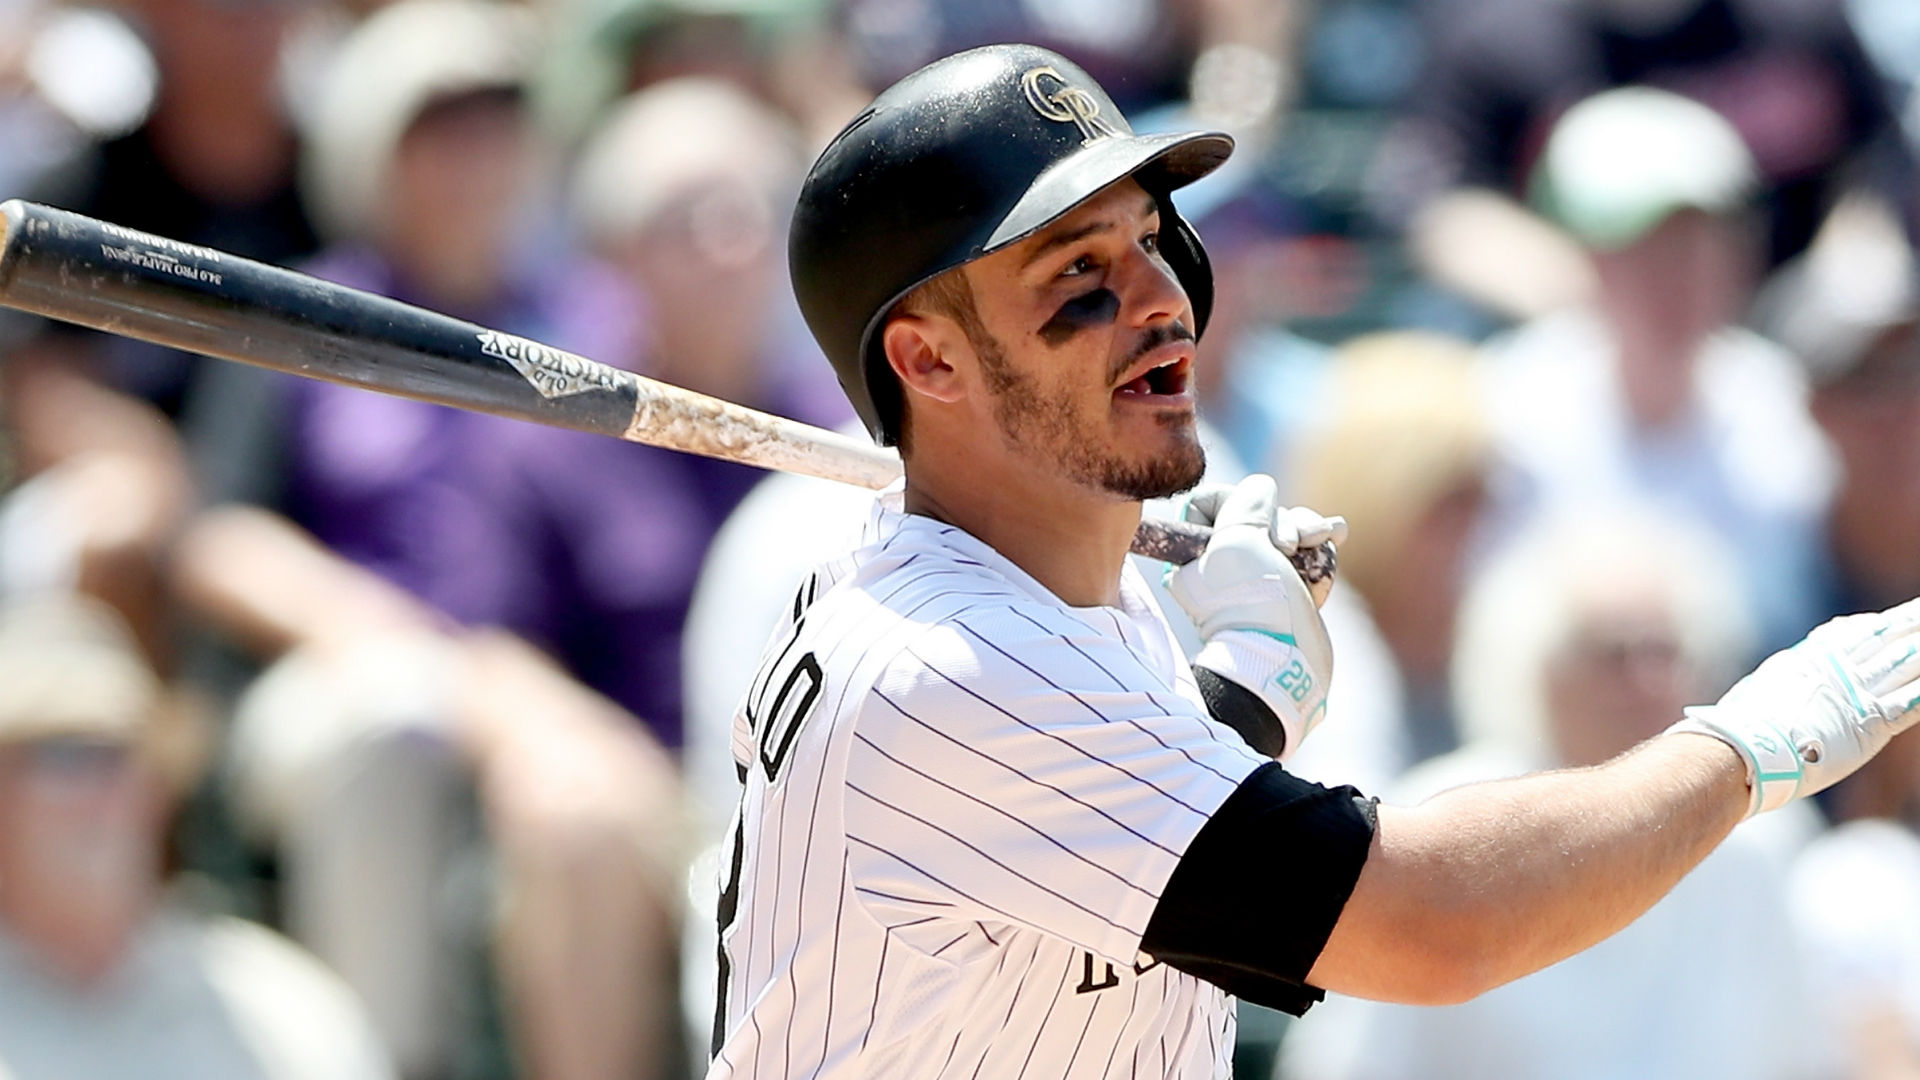 Arenado completes cycle with game-winning homer for Rockies